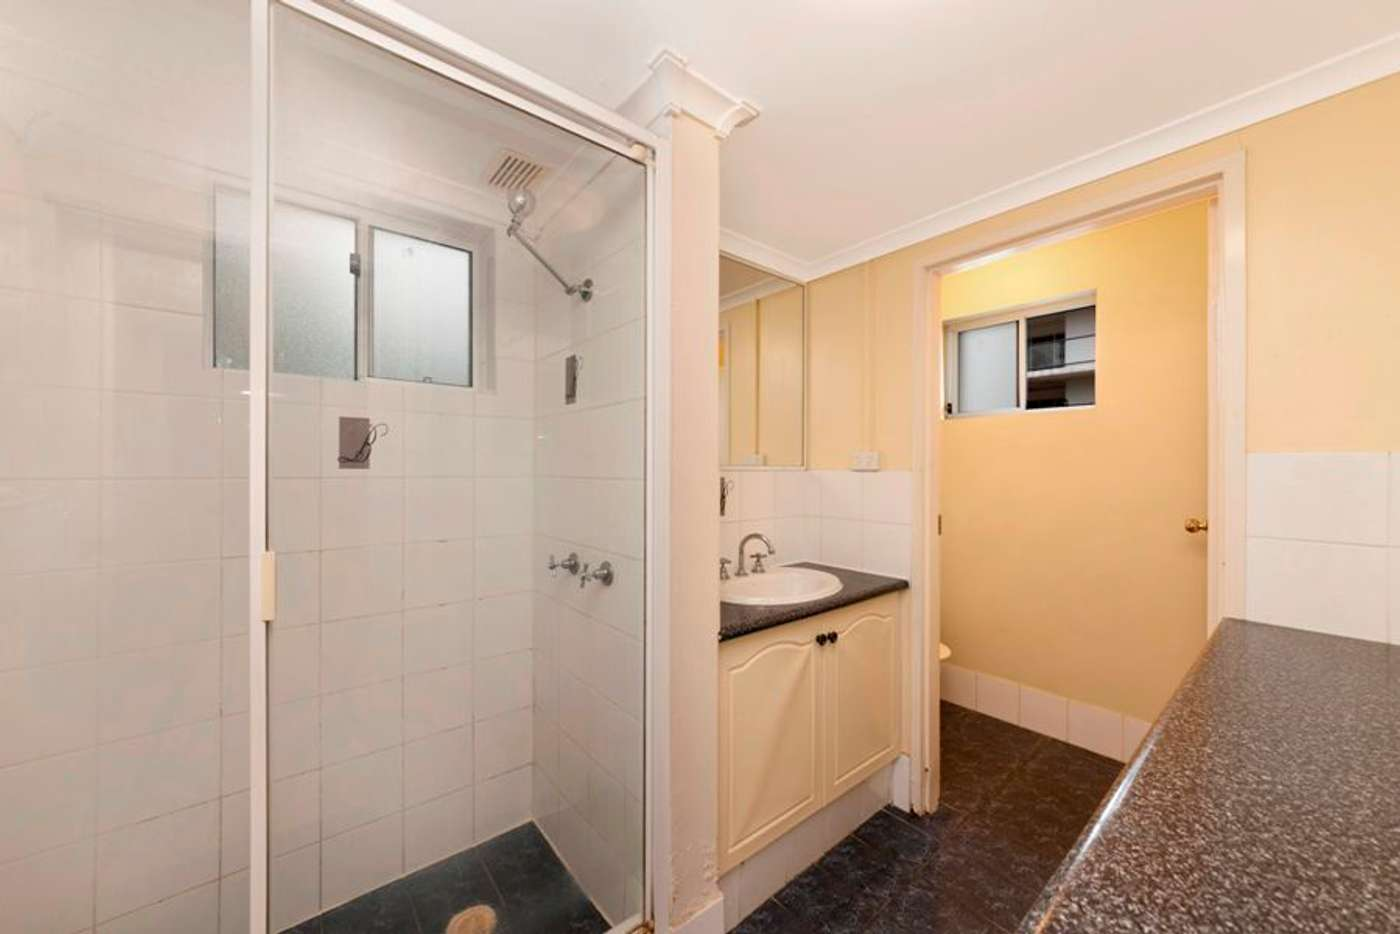 Sixth view of Homely apartment listing, 8/53 Thorn Street, Kangaroo Point QLD 4169